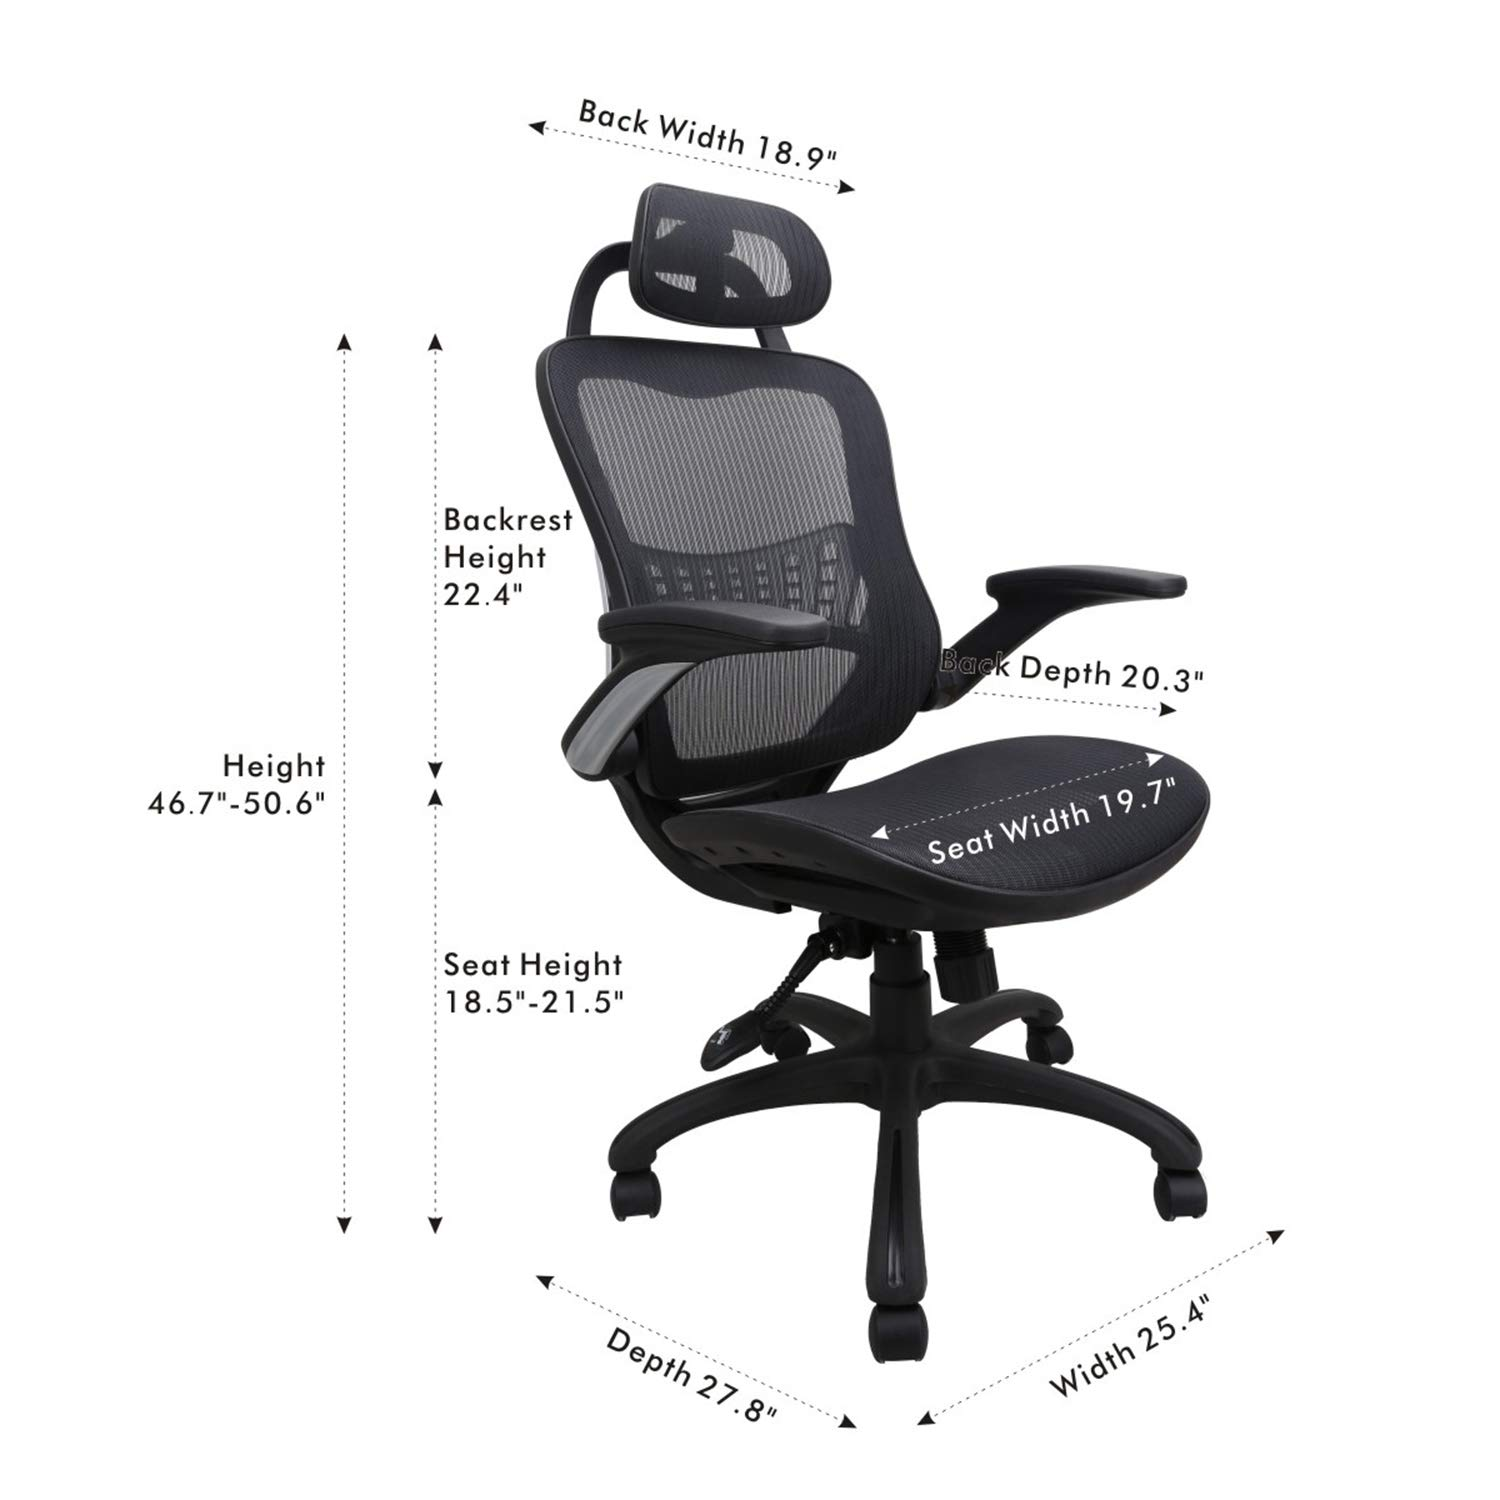 Ergonomic Office Chair: Passed BIFMA/SGS Weight Support Over 300Ibs,Breathable Mesh Cushion &High Back - Executive Chairs with Adjustable Head& Backrest,Flip-up Armrests,360-Degree Swivel Chair by Komene (Image #5)